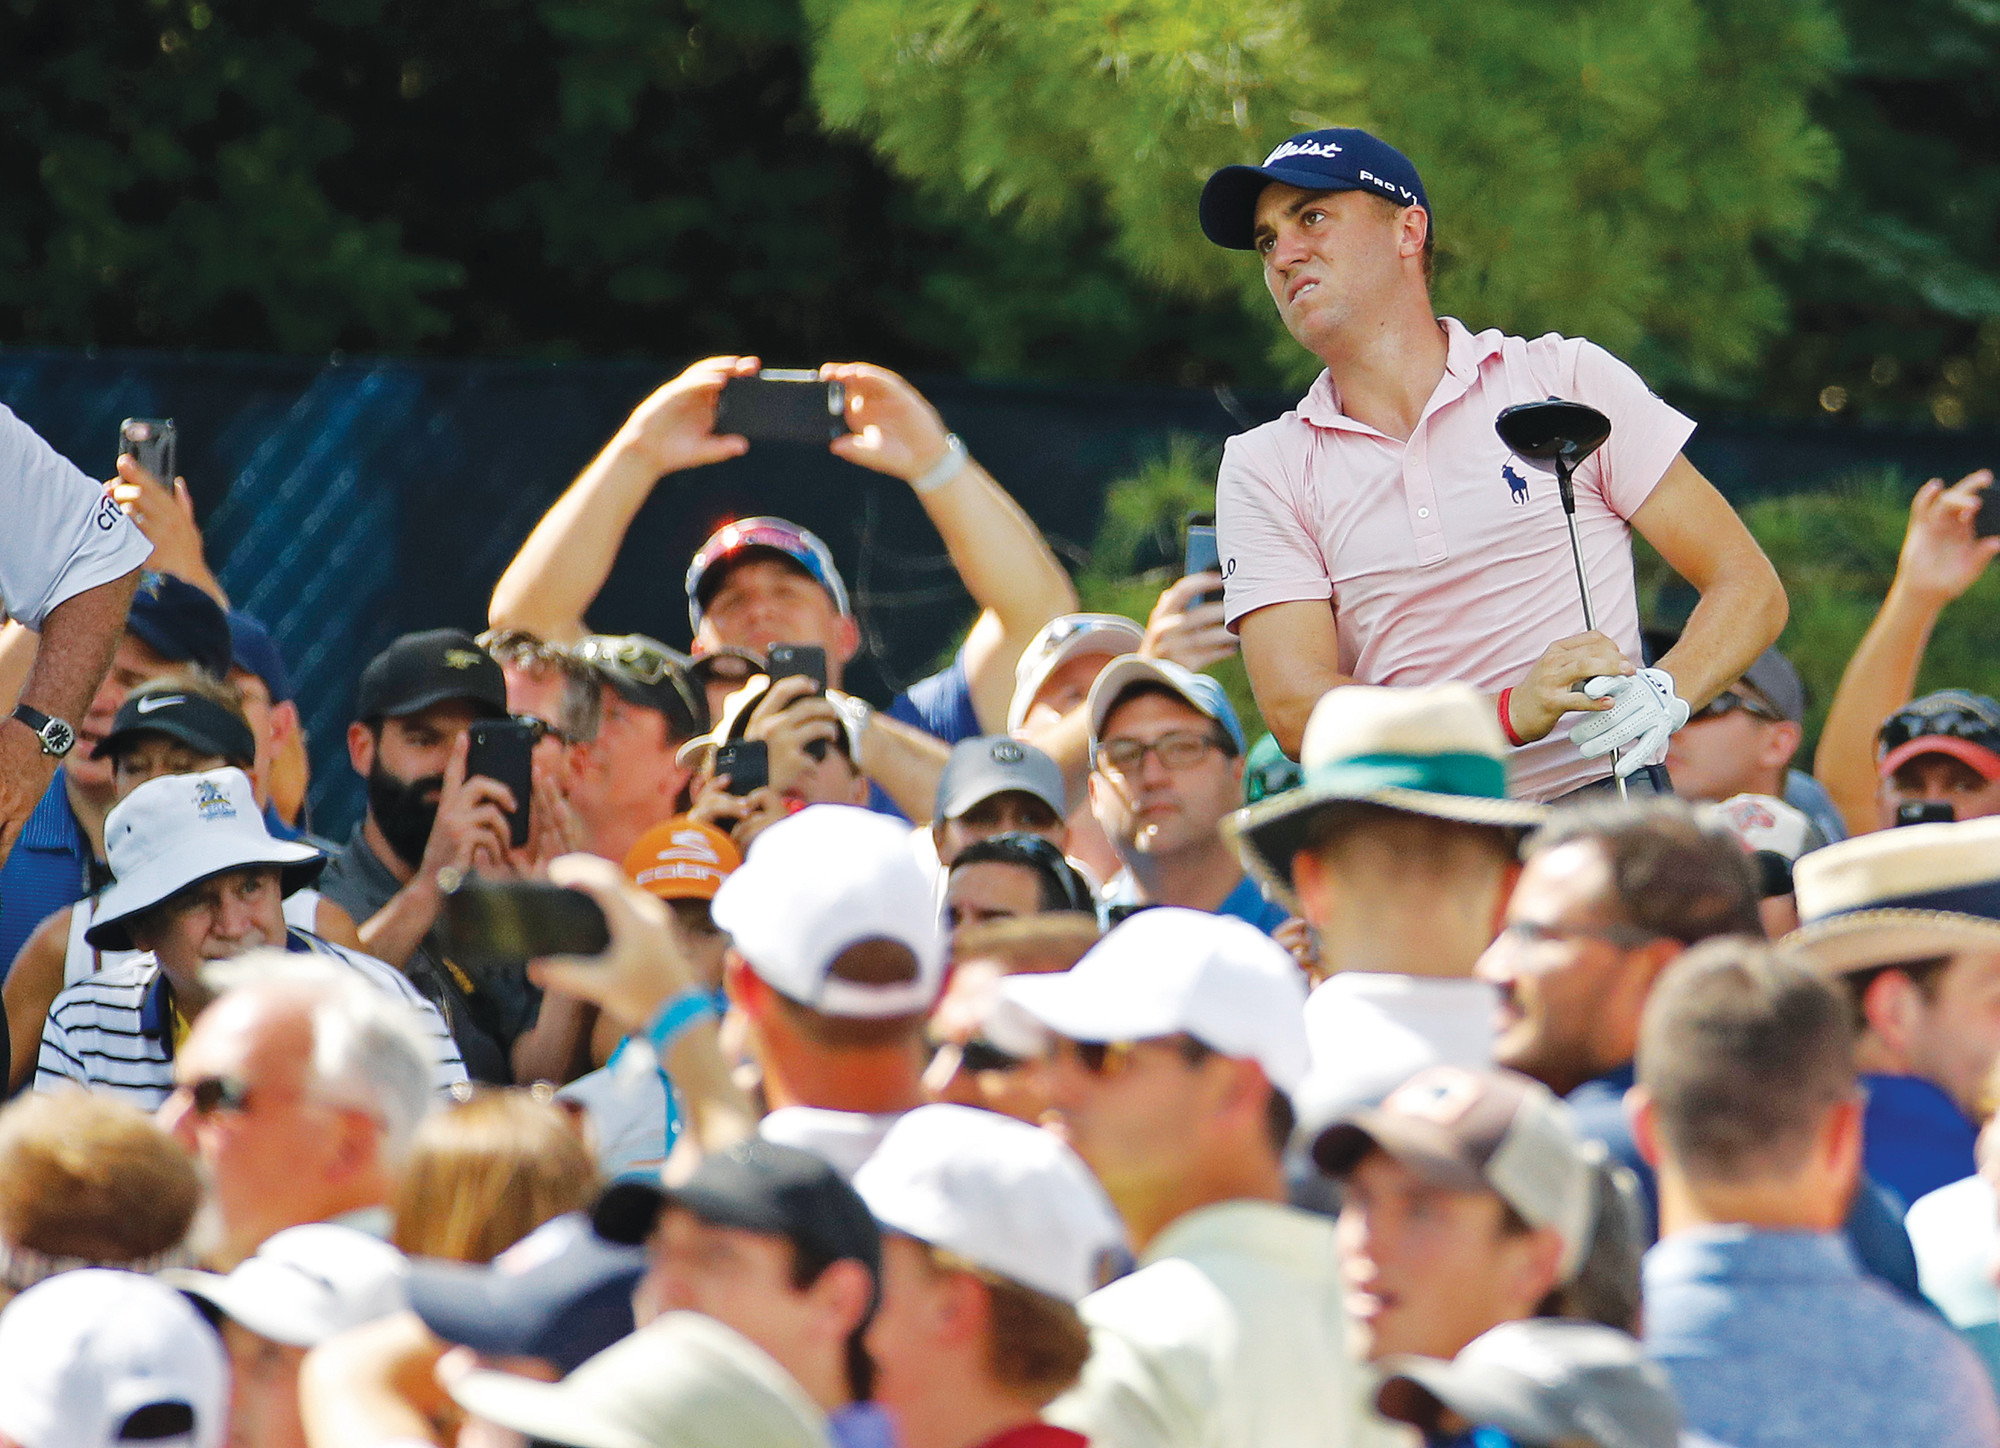 Justin Thomas watches his tee shot on the 15th hole during a practice round for the PGA  Championship at Bellerive Country Club on Wednesday in St. Louis. Thomas will be trying to defend his title when the tournament begins today.